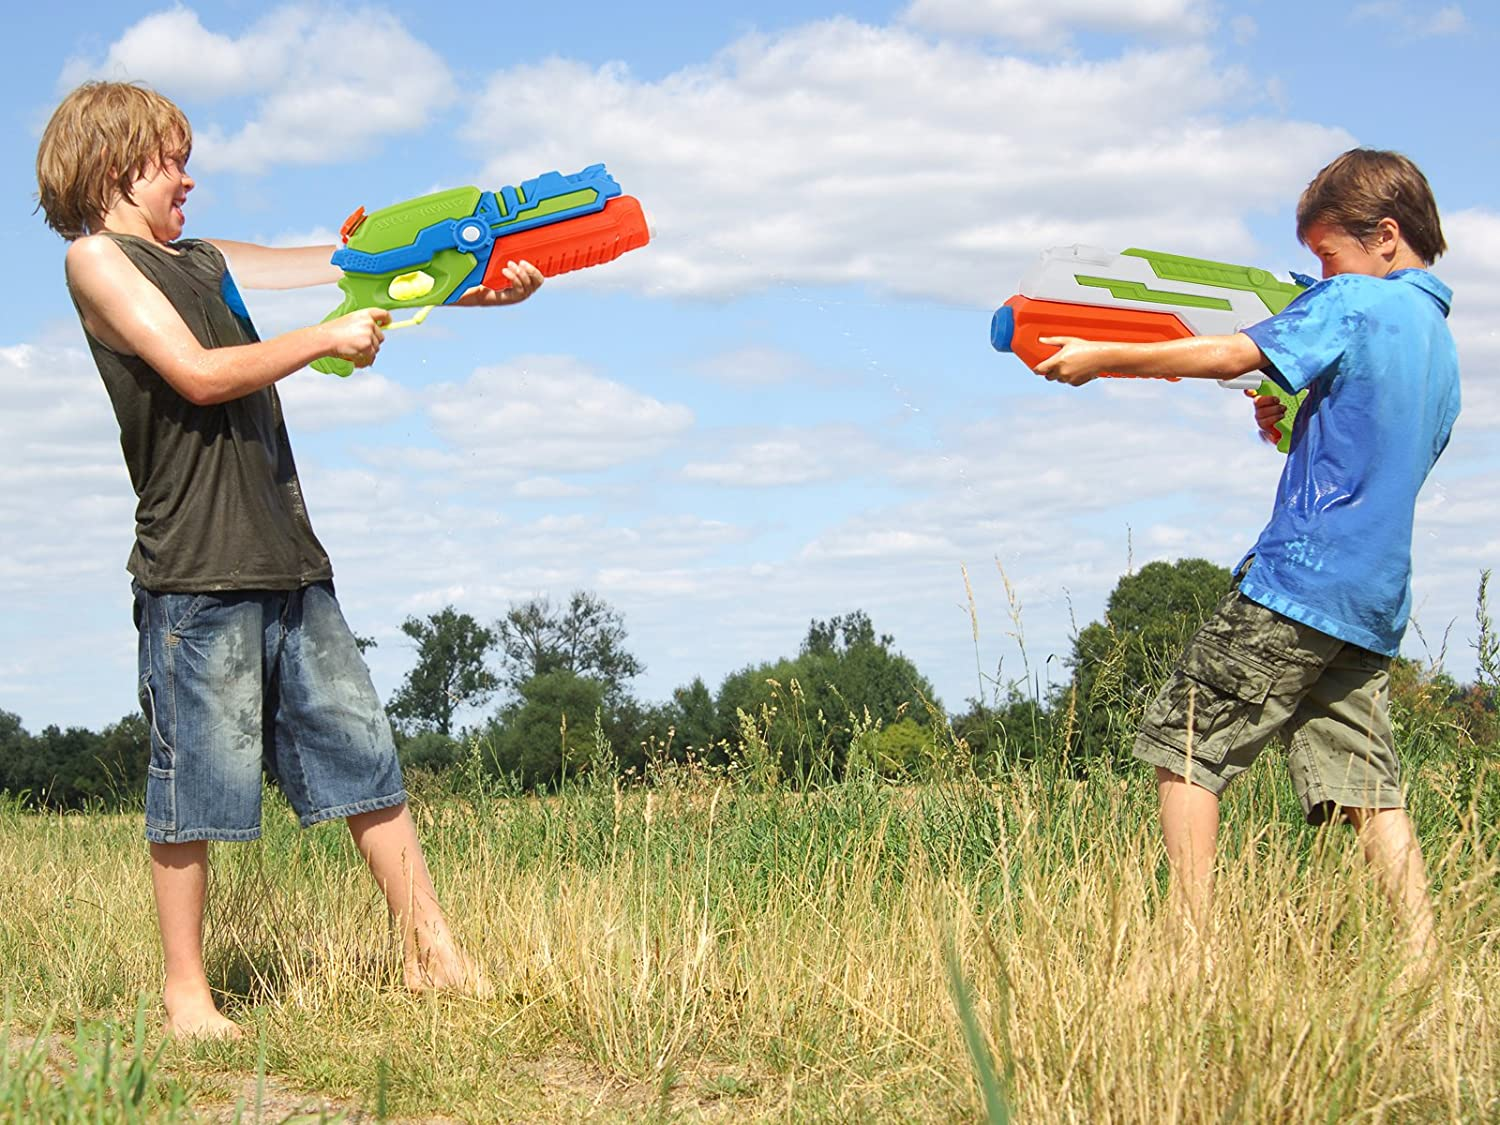 Shoots Up to 35 Ft POKONBOY 2-Pack Water Guns Water Blaster 500ml Large Capacity Squirt Gun Game Fun Far Range Party Favor Toy for Kids Summer Beach Toy